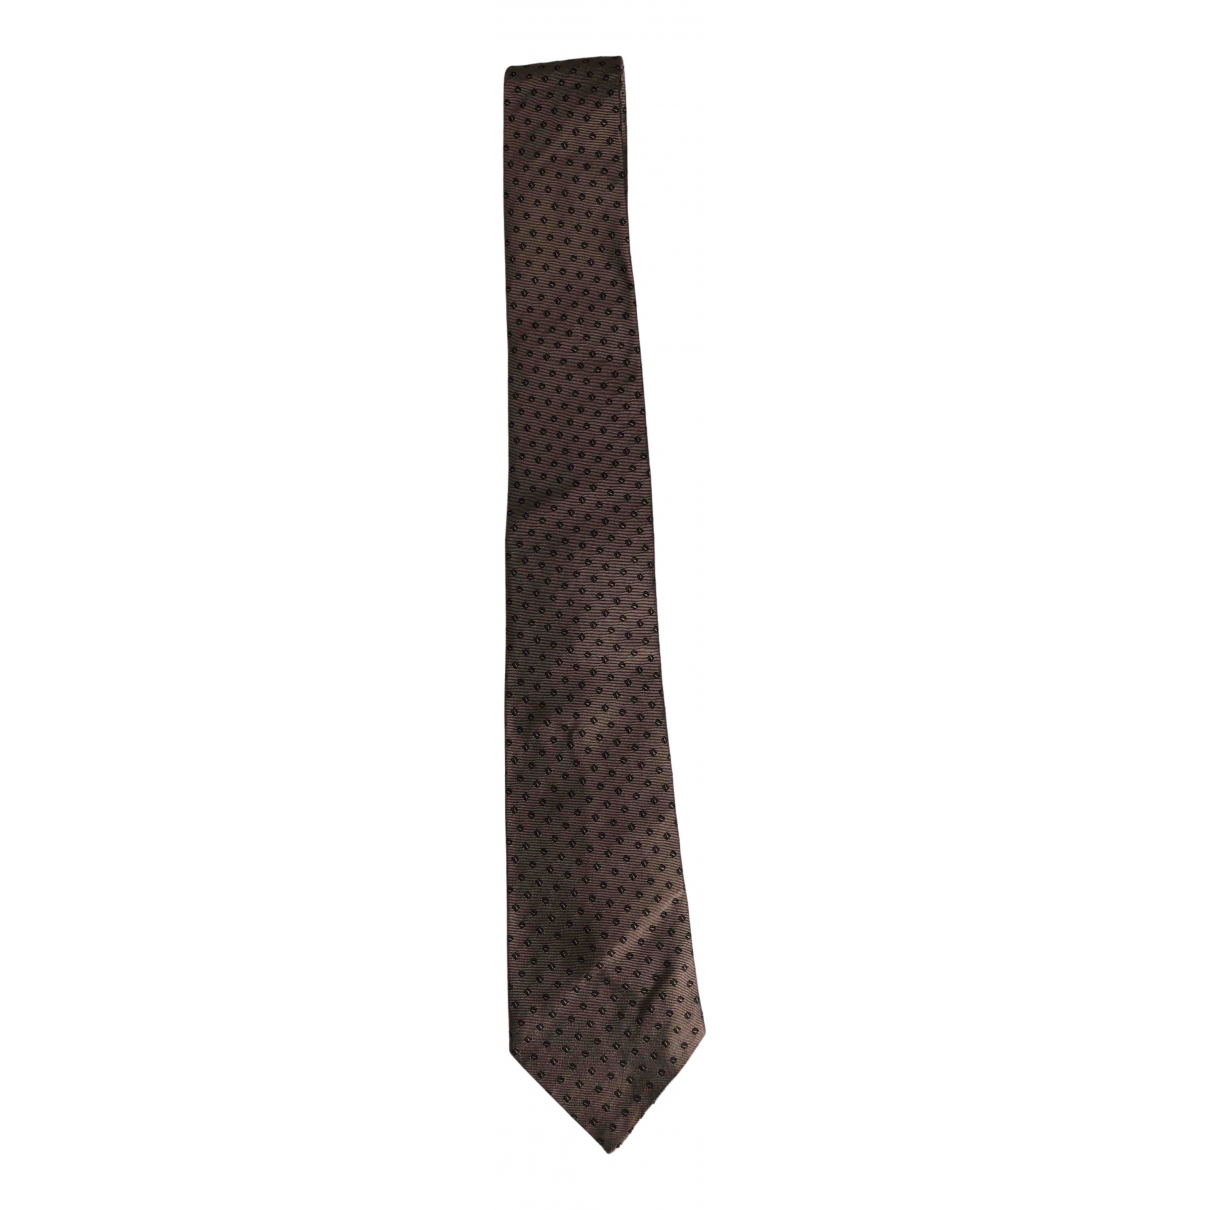 Bottega Veneta N Brown Silk Ties for Men N